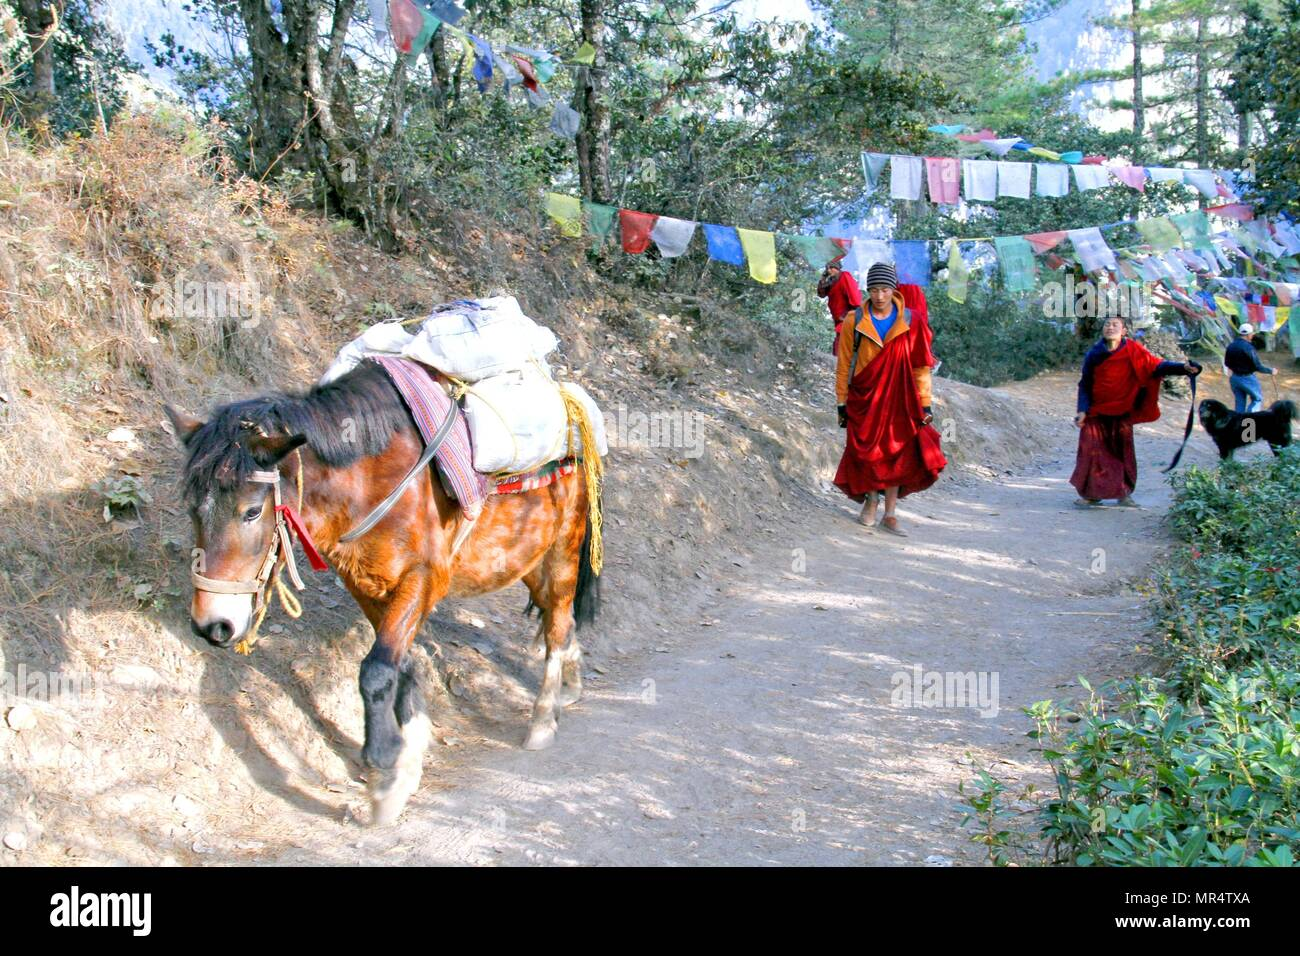 PARO, BHUTAN - November 09, 2012 : Horse carrying goods and two young monks at trail to Taktshang Goemba or Tiger's nest monastery, Paro, Bhutan - Stock Image